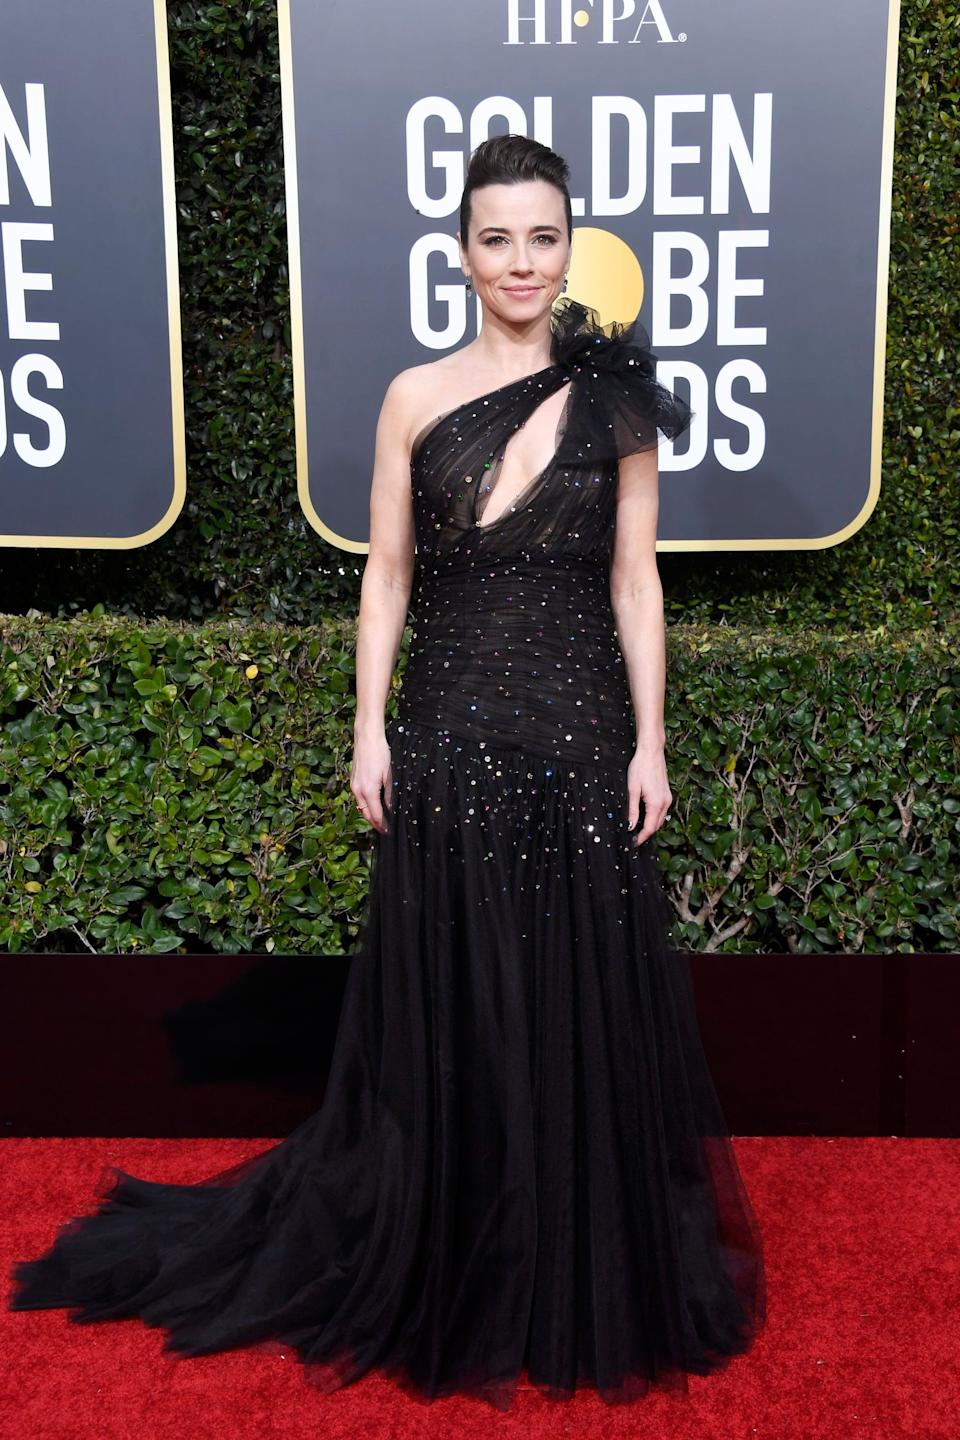 <p>Wearing a Monique Lhuillier dress with Sophia Webster shoes and Irene Neuwirth jewels.</p>